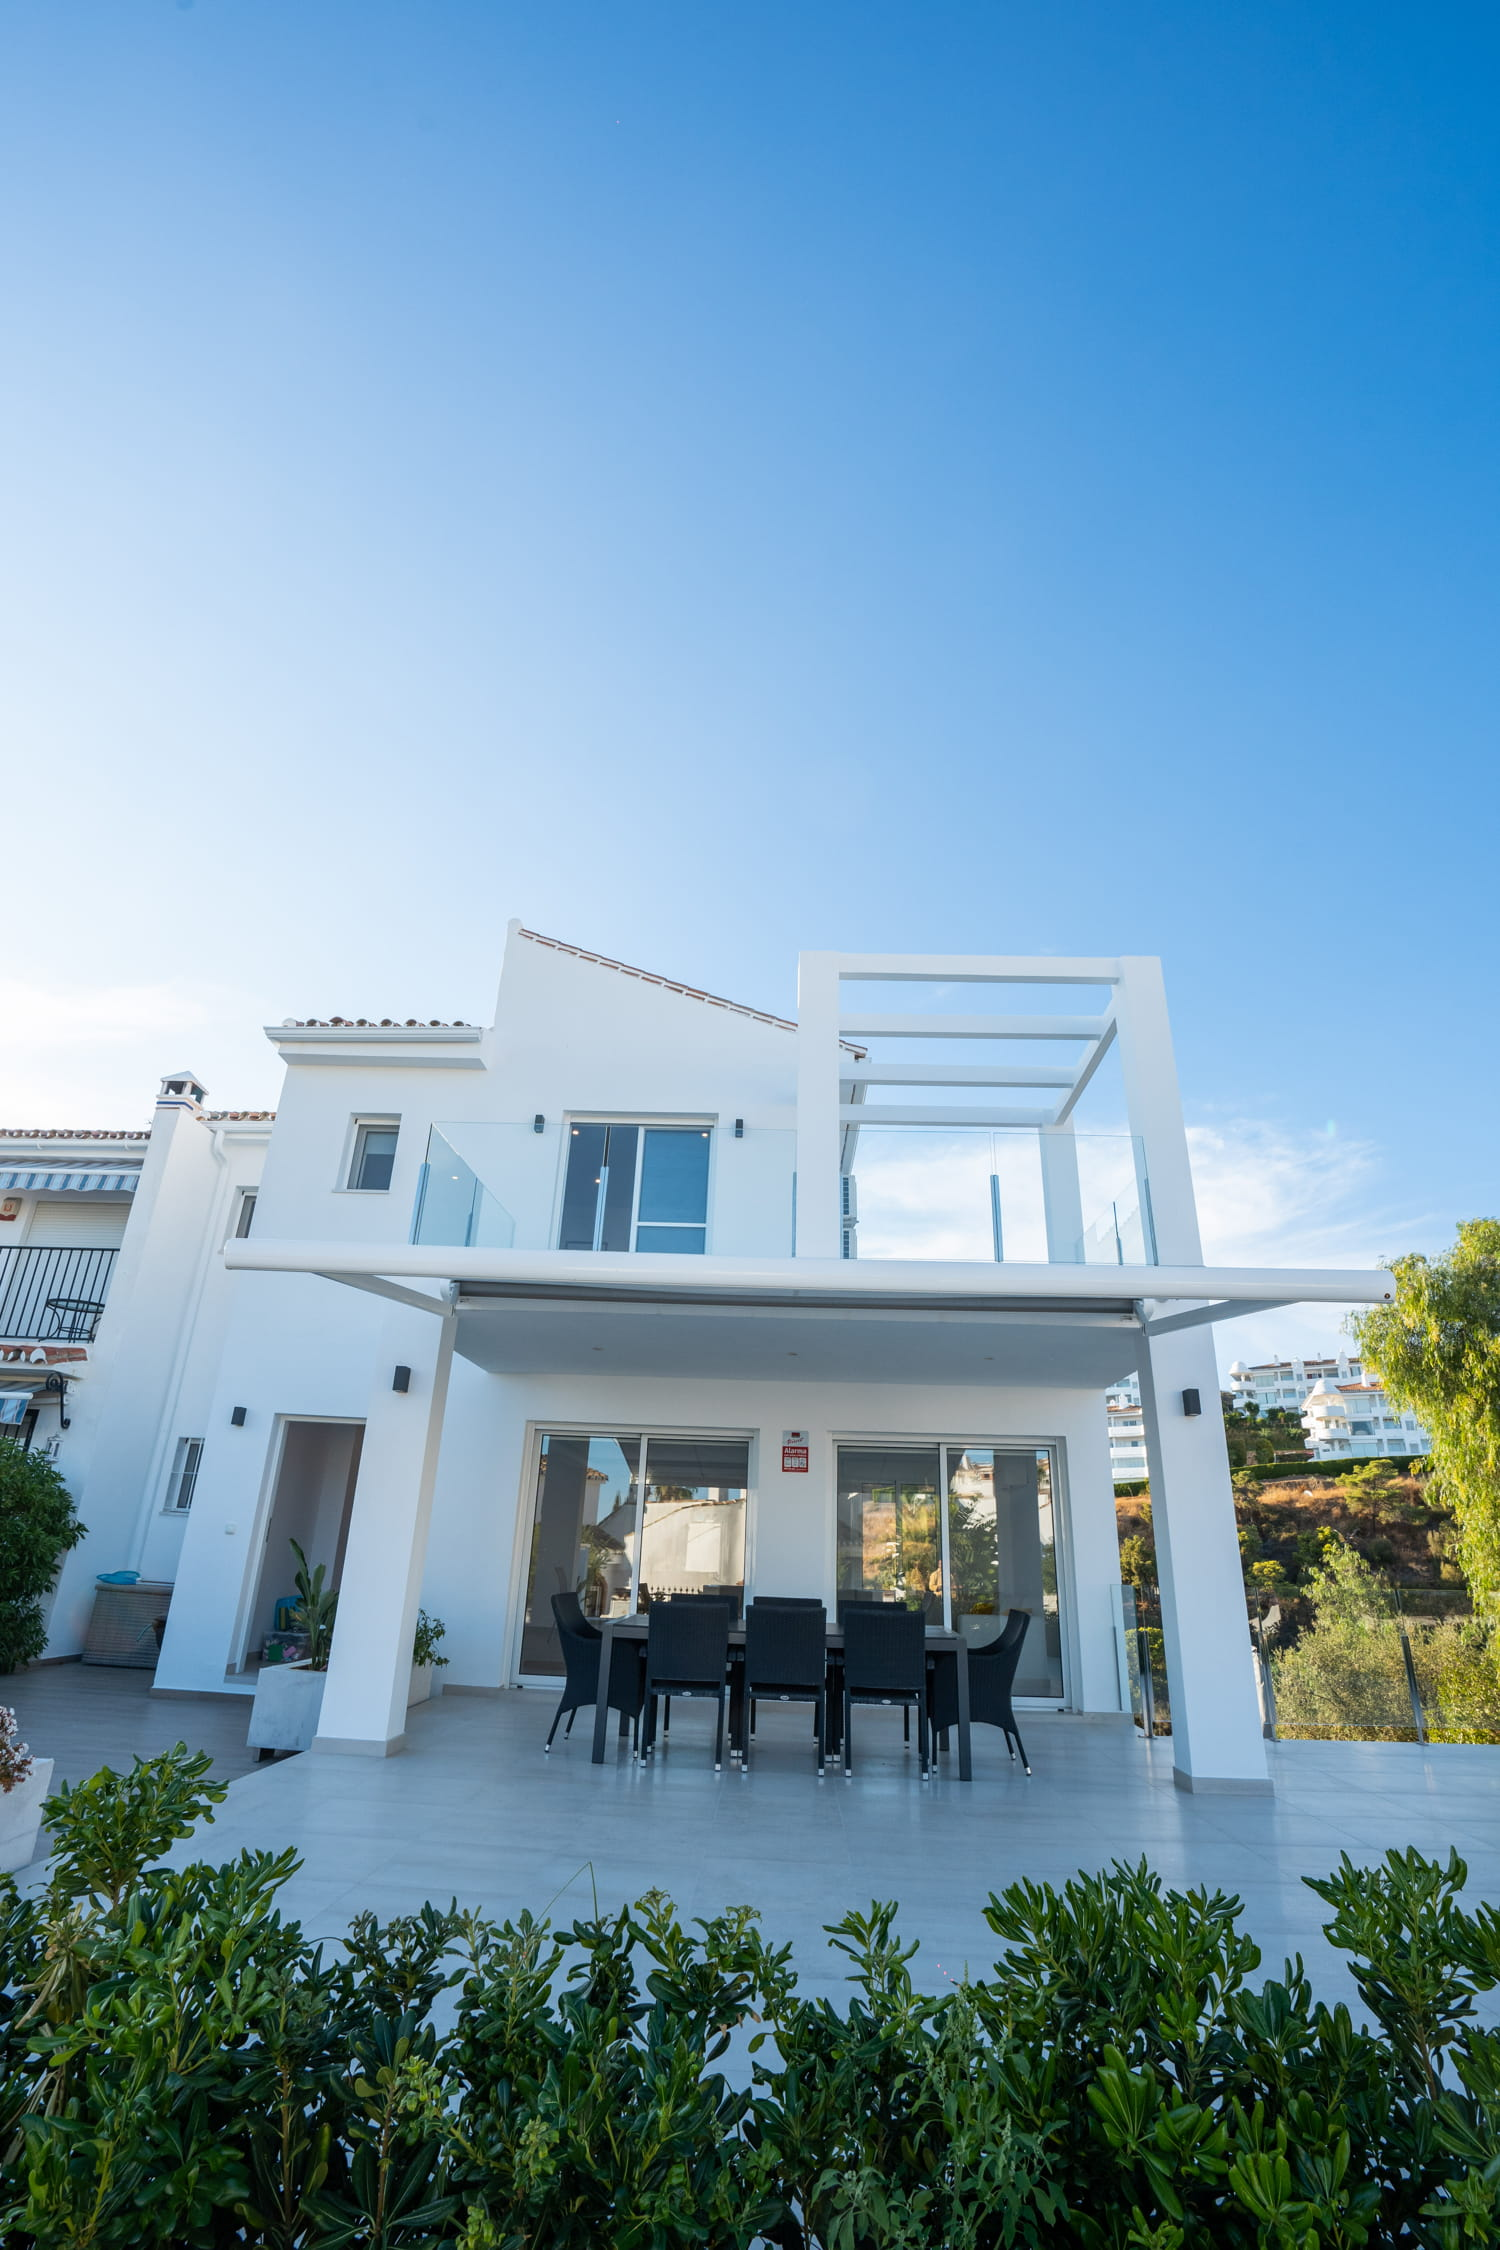 reforma integral villa mijas costa u projects (23)